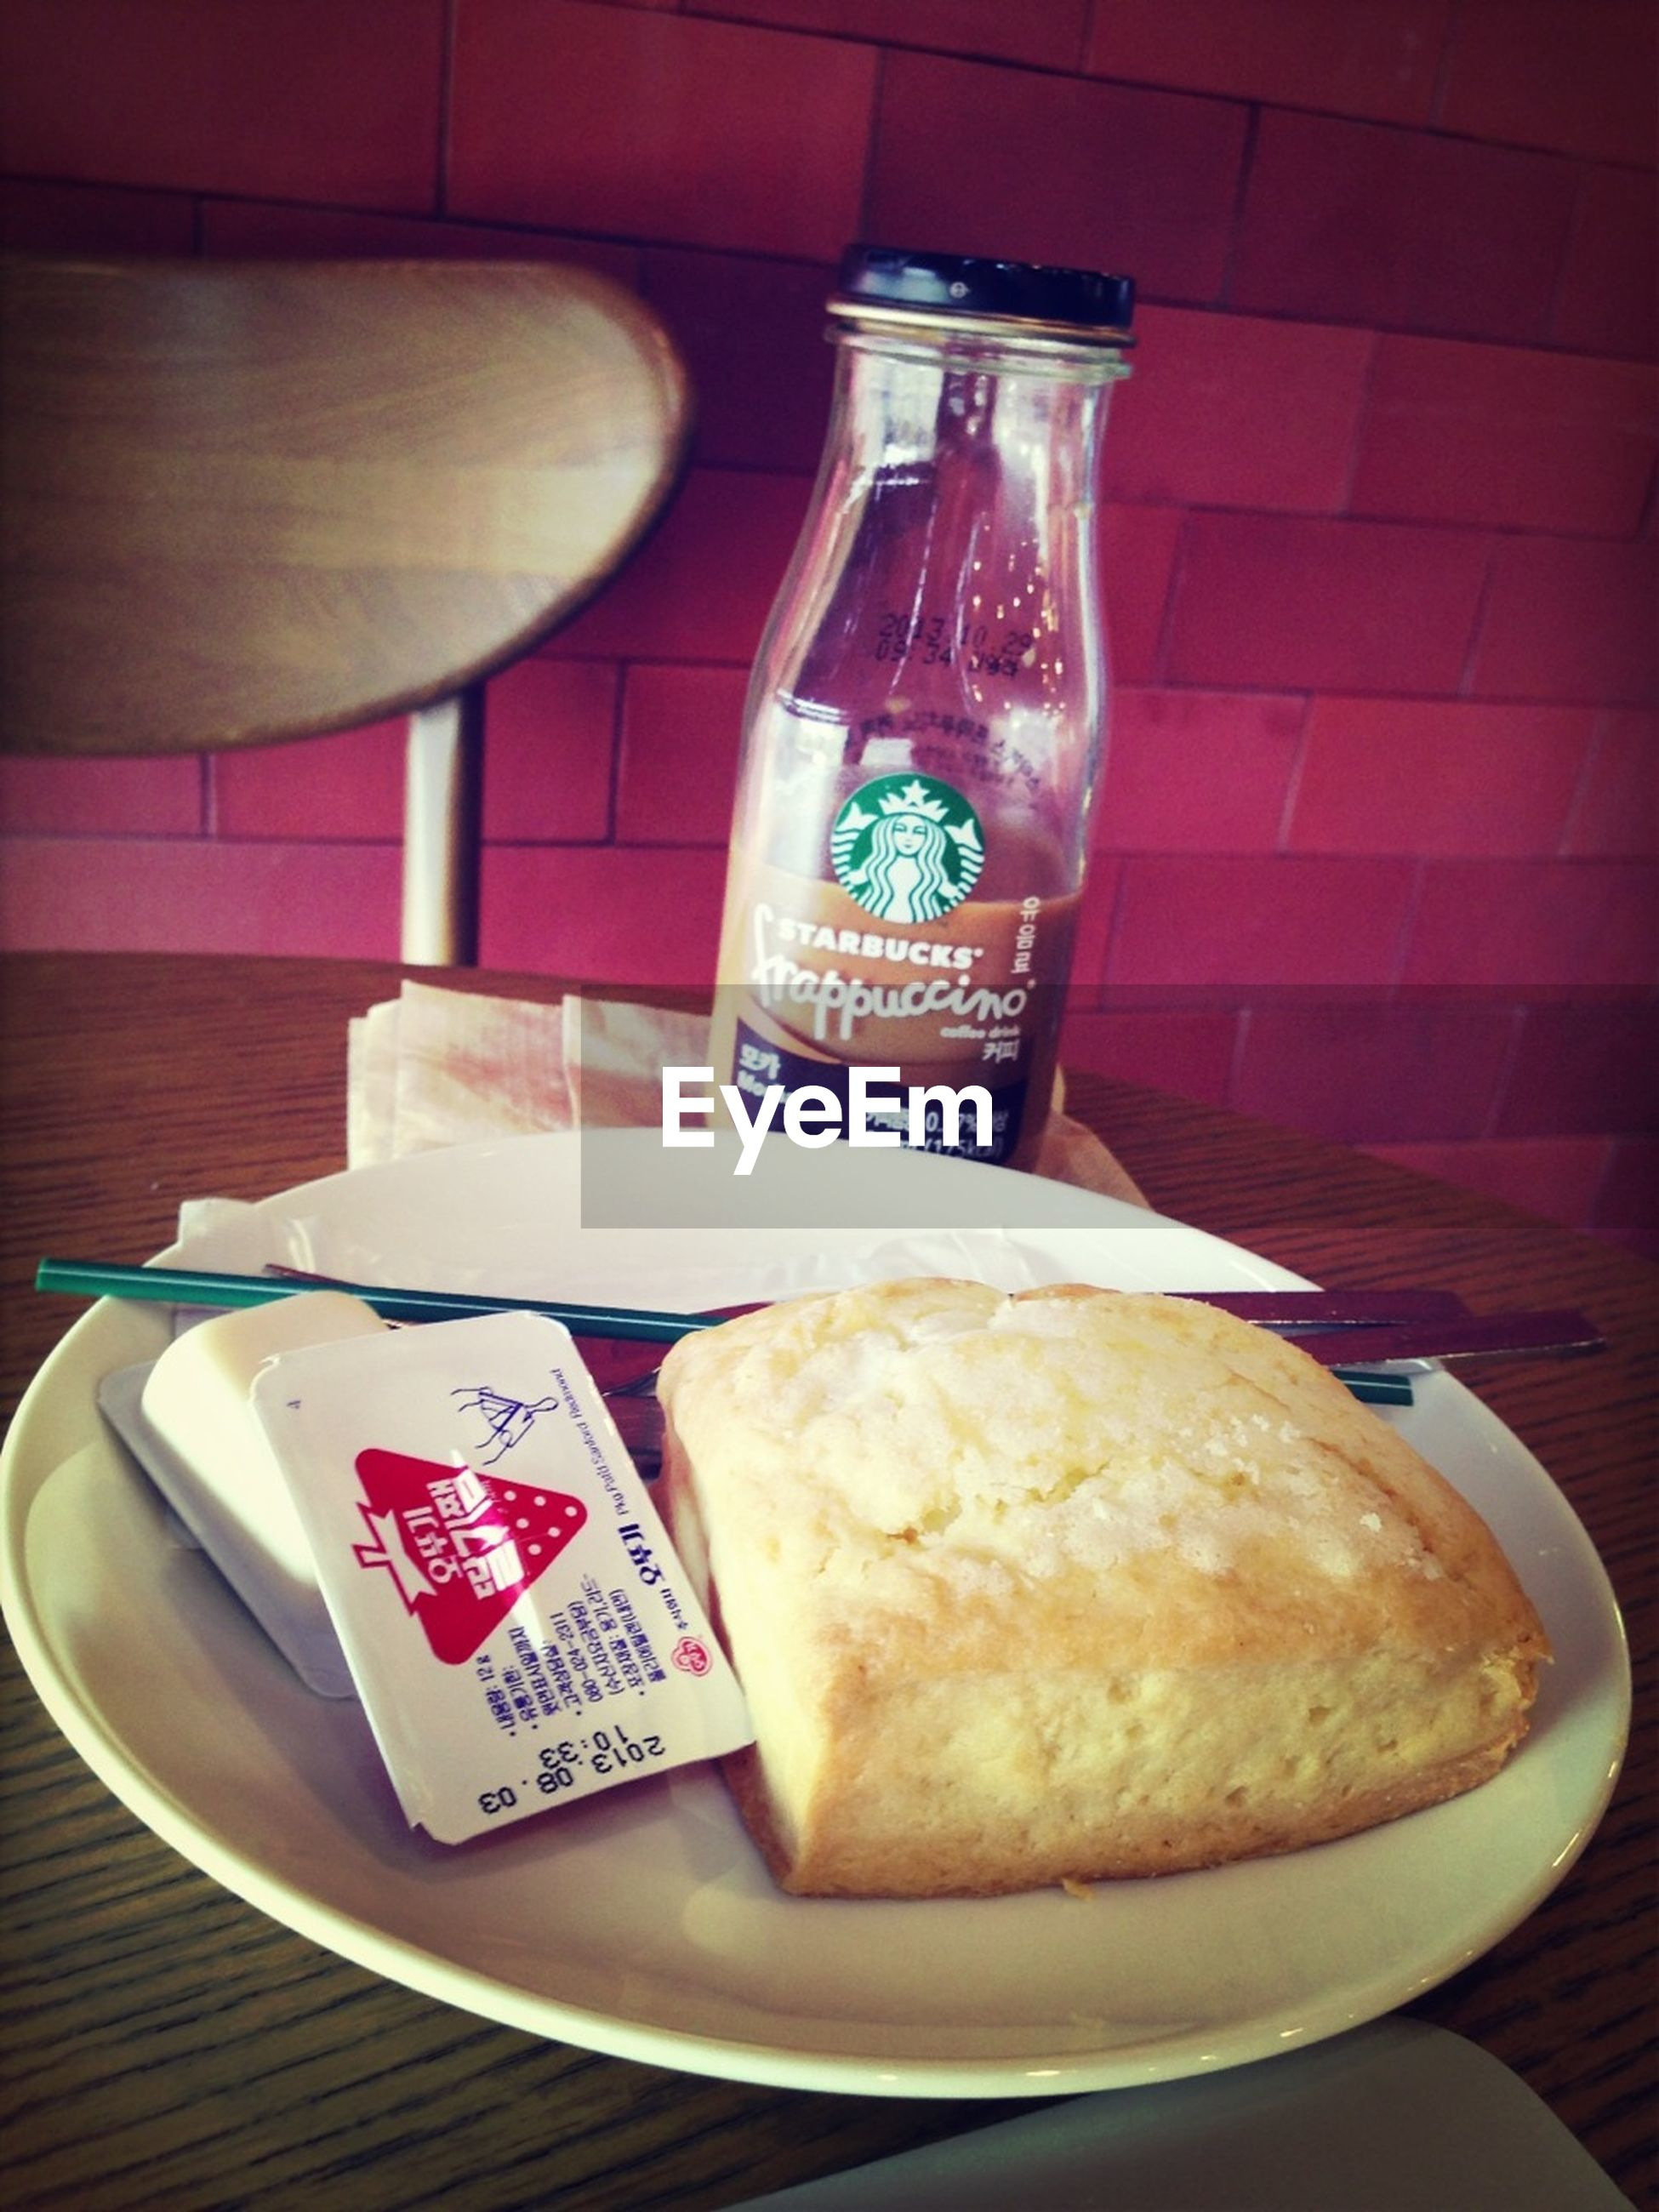 indoors, food and drink, table, food, still life, plate, drink, freshness, ready-to-eat, coffee cup, refreshment, communication, bread, text, no people, breakfast, wood - material, indulgence, coffee - drink, healthy eating